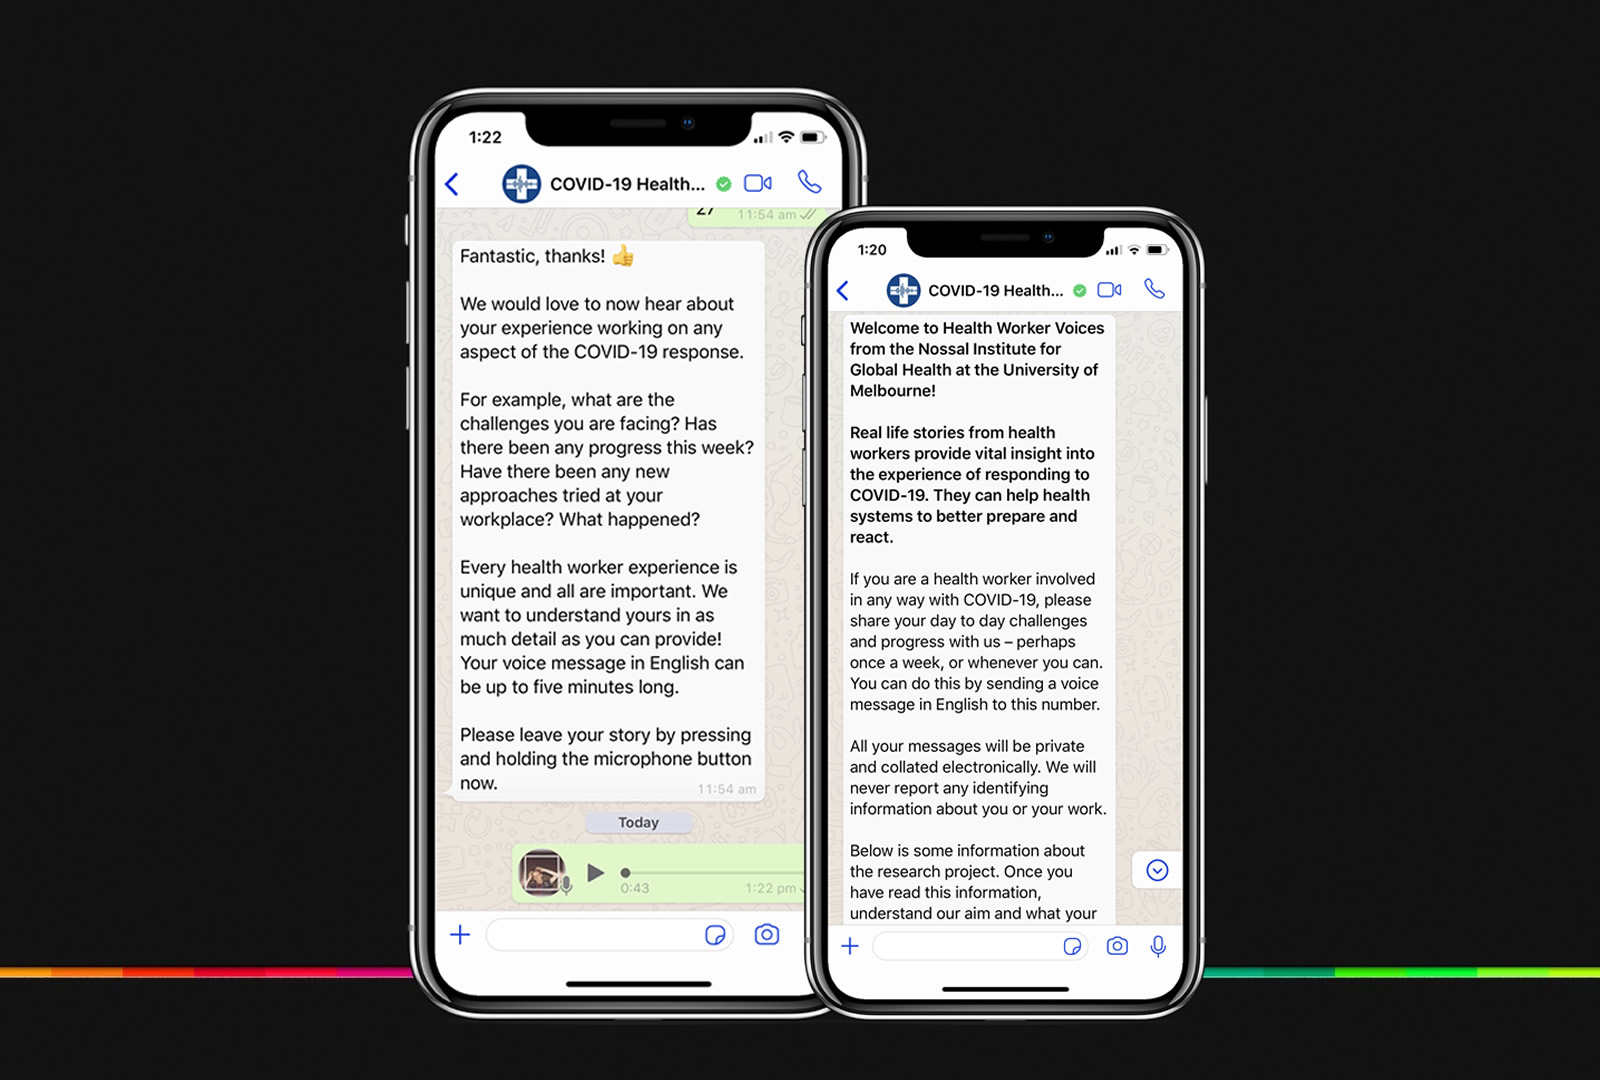 COVID-19 Health Worker Voices: a new project gathering health system insights from the frontline via WhatsApp